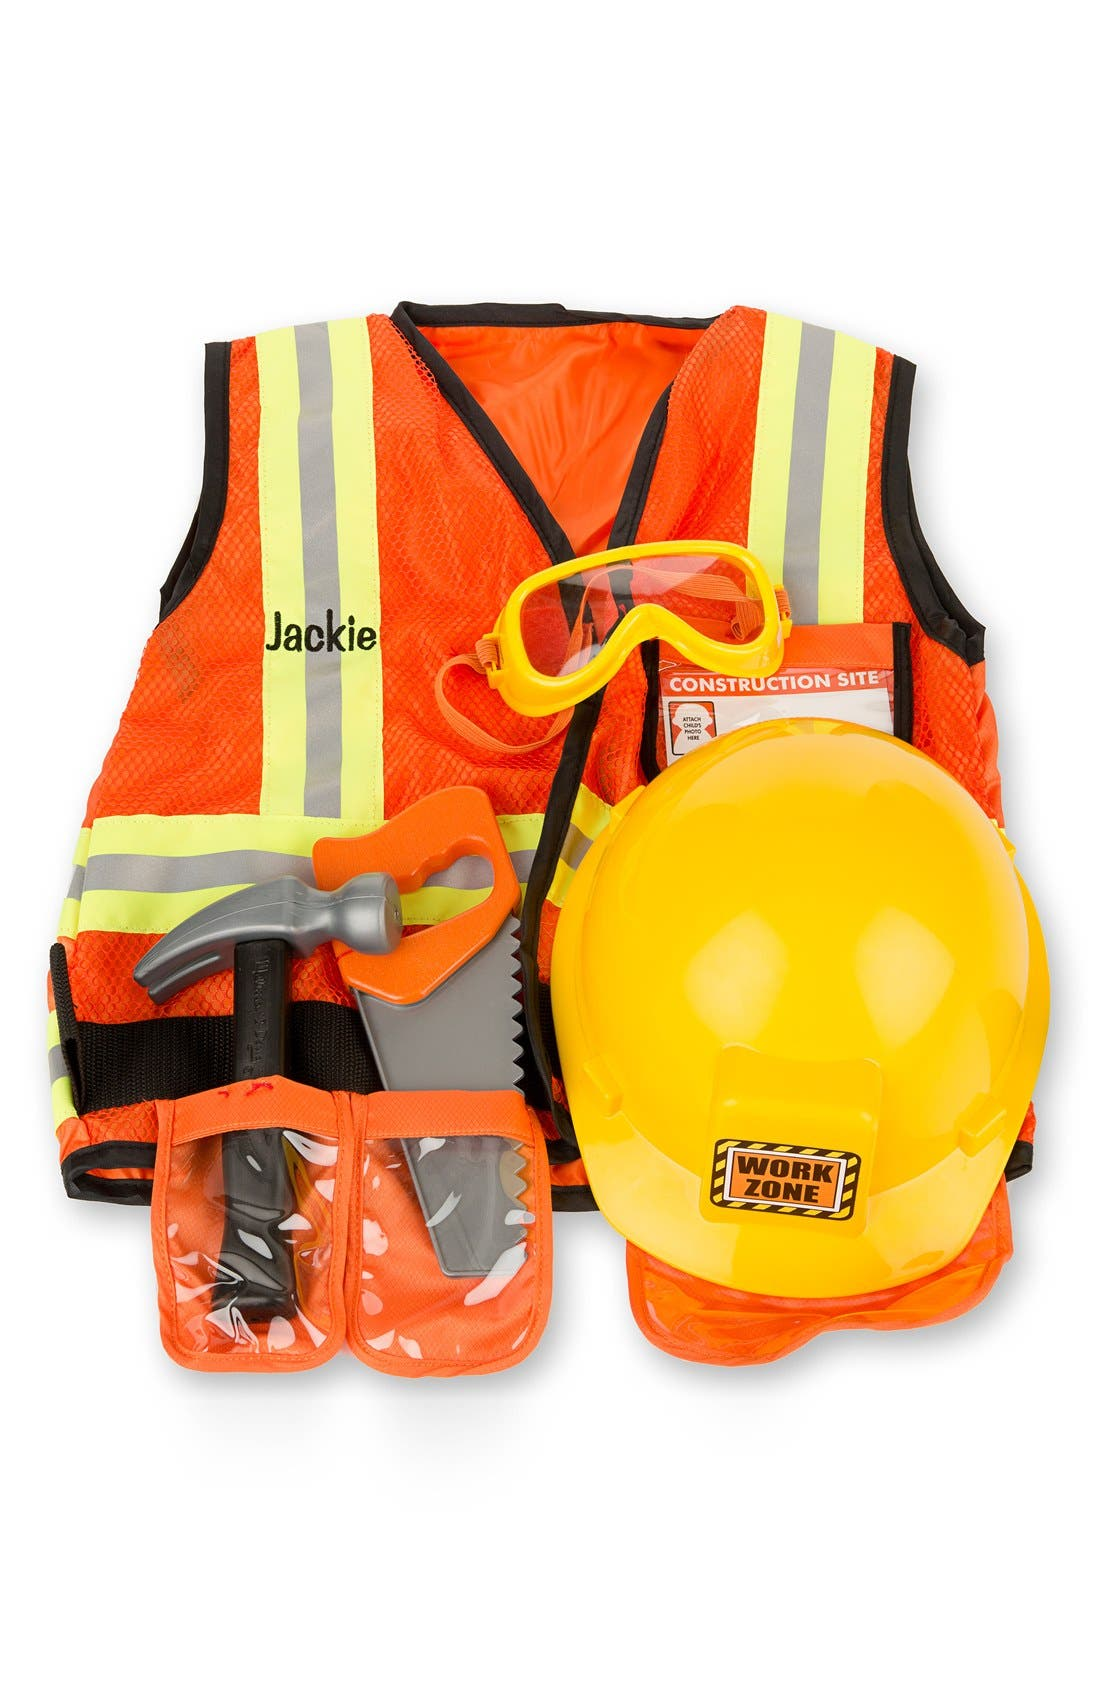 Melissa & Doug 'Construction Worker' Personalized Costume Set (Toddler)